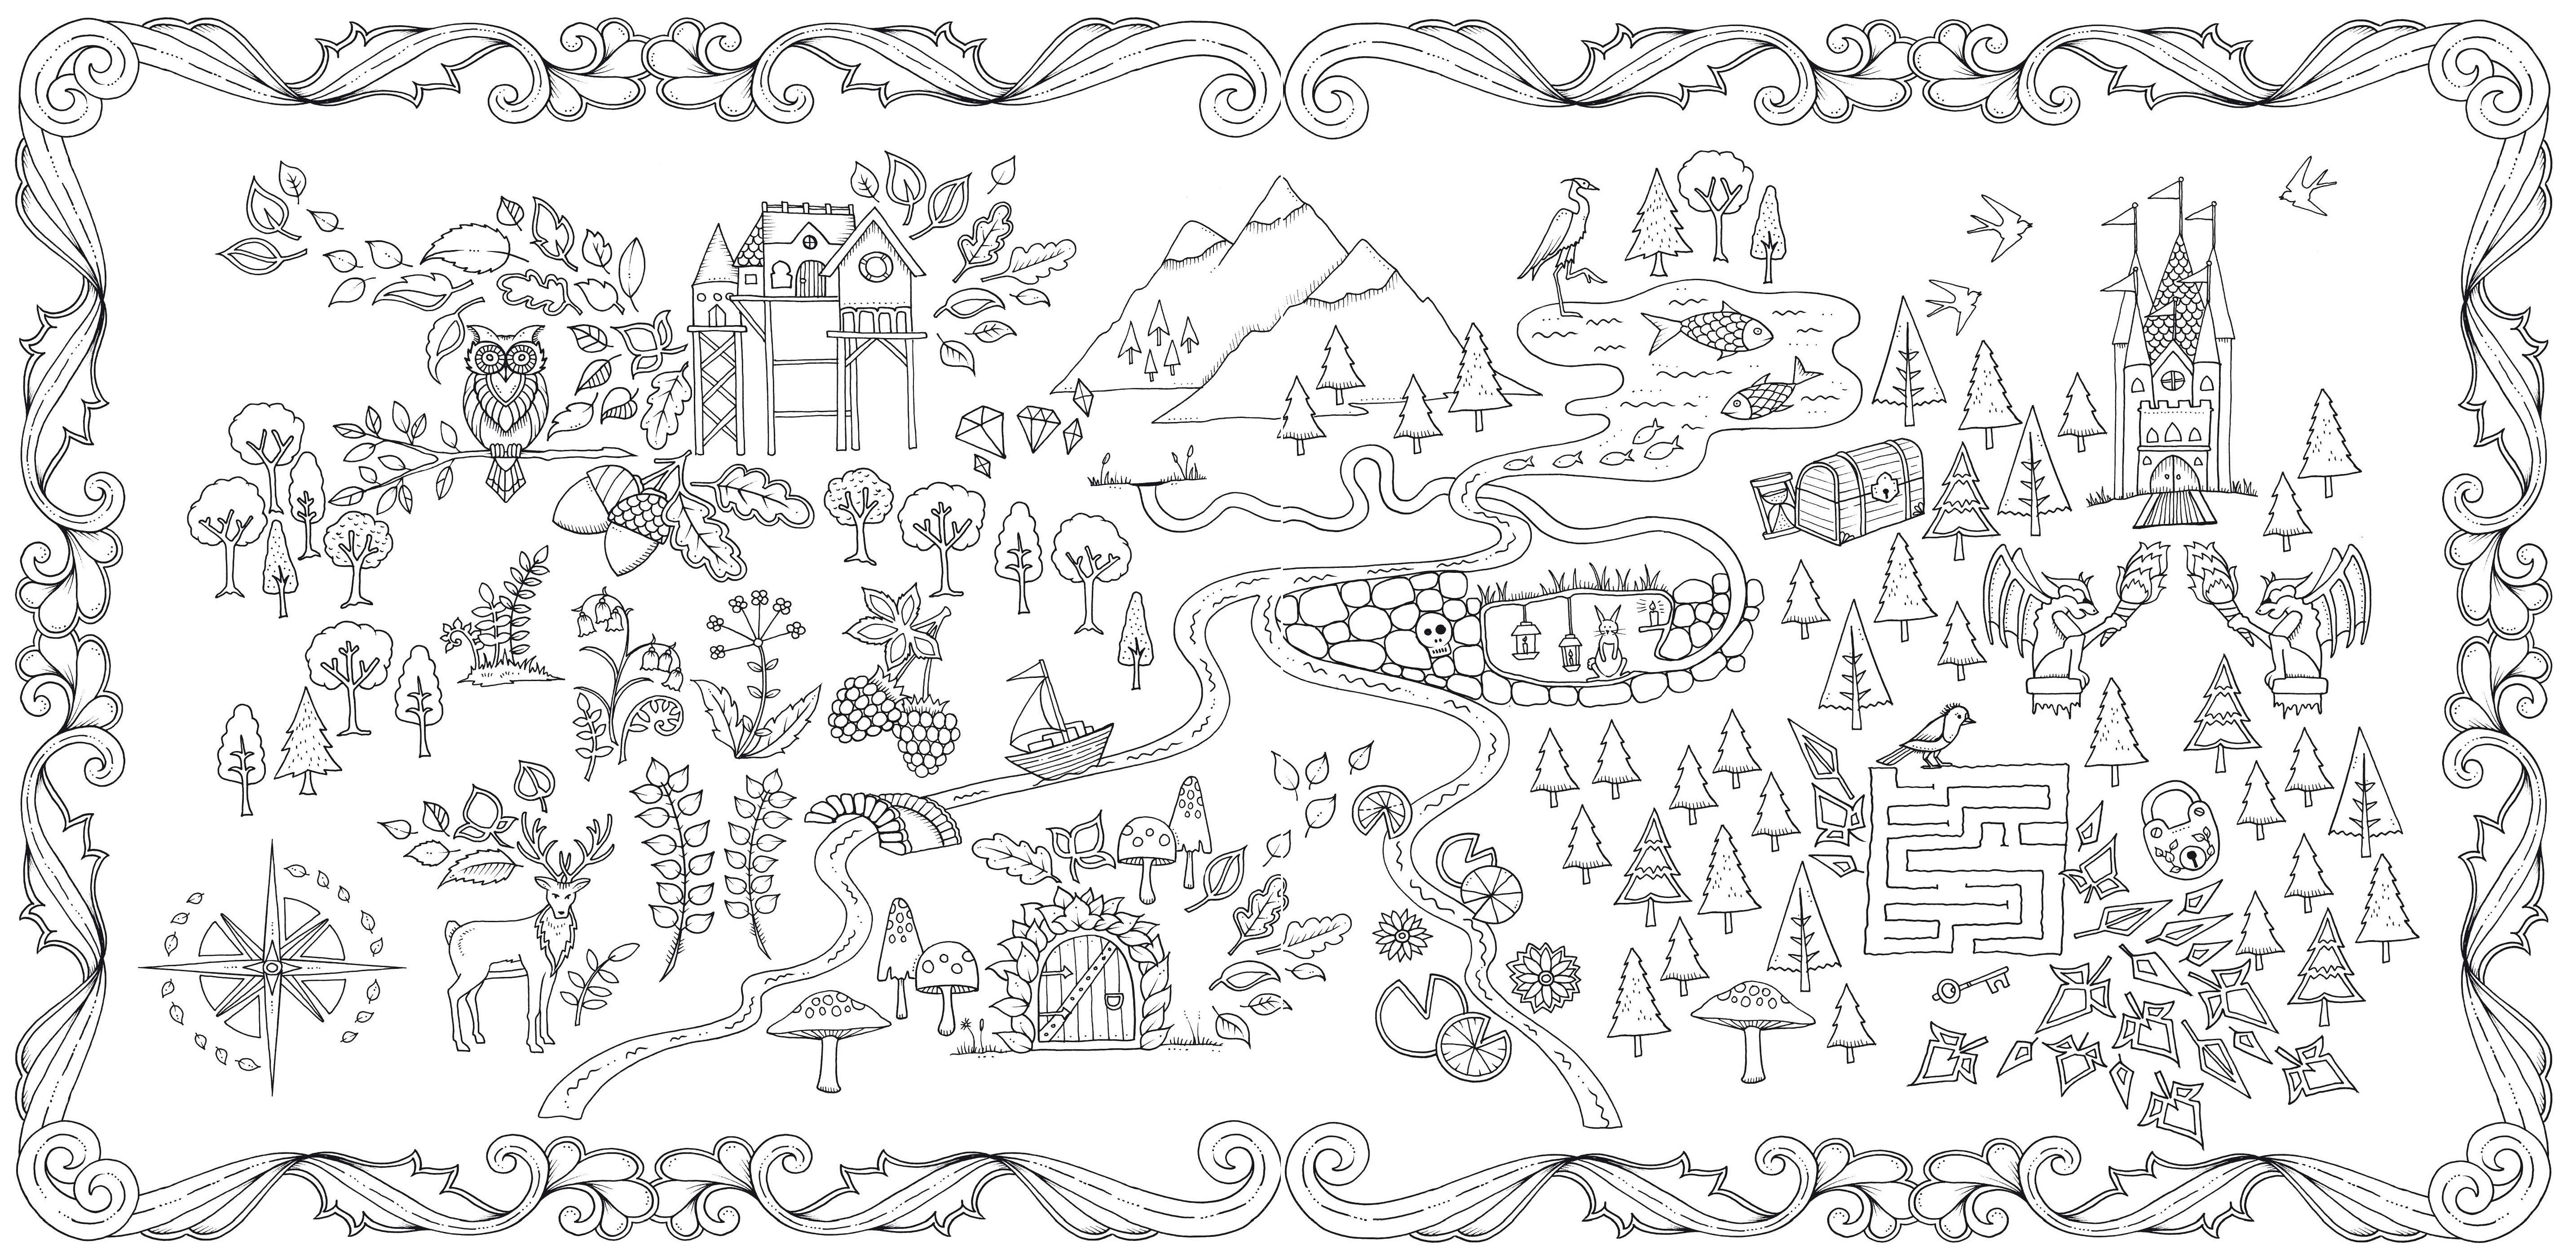 Discover Ideas About Secret Garden Coloring Book Enchanted Forest An Inky